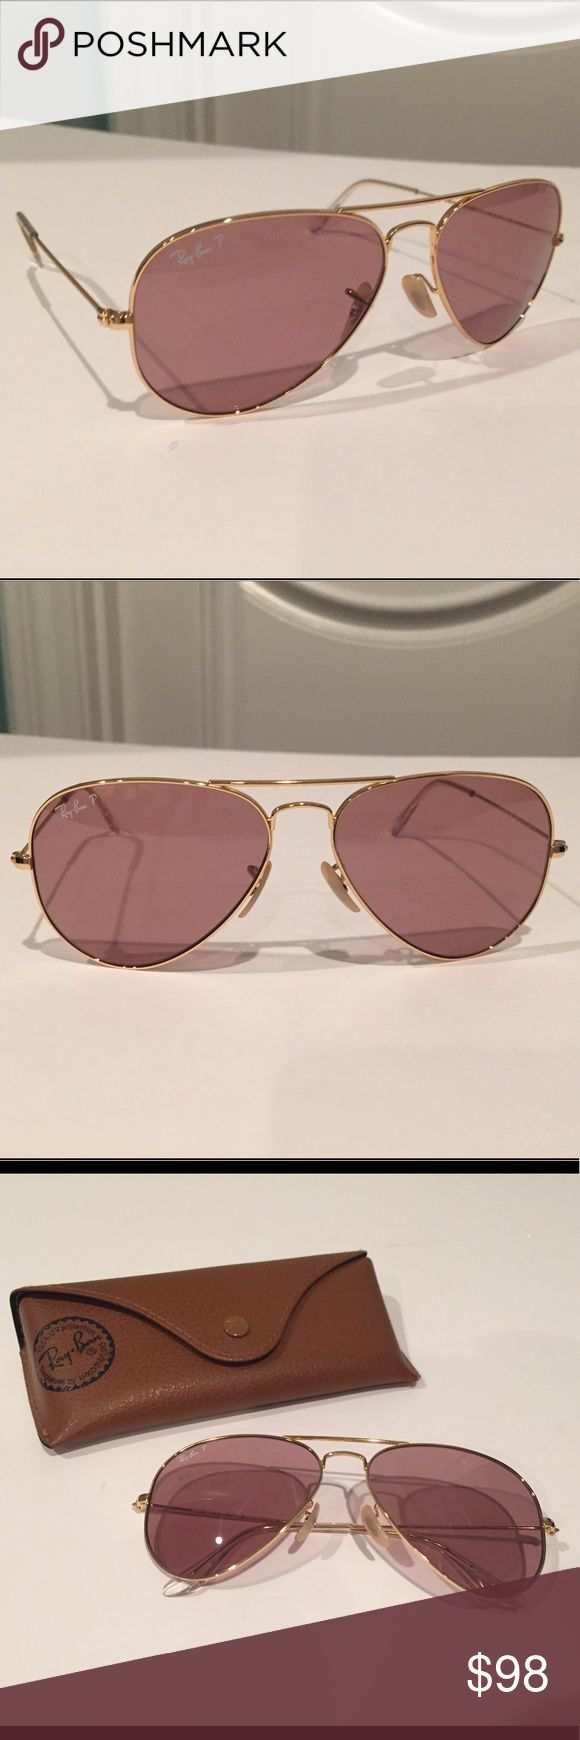 Ray Ban Polarized J Crew edition Like new no signs  of wear. Ray-Ban Accessories Sunglasses